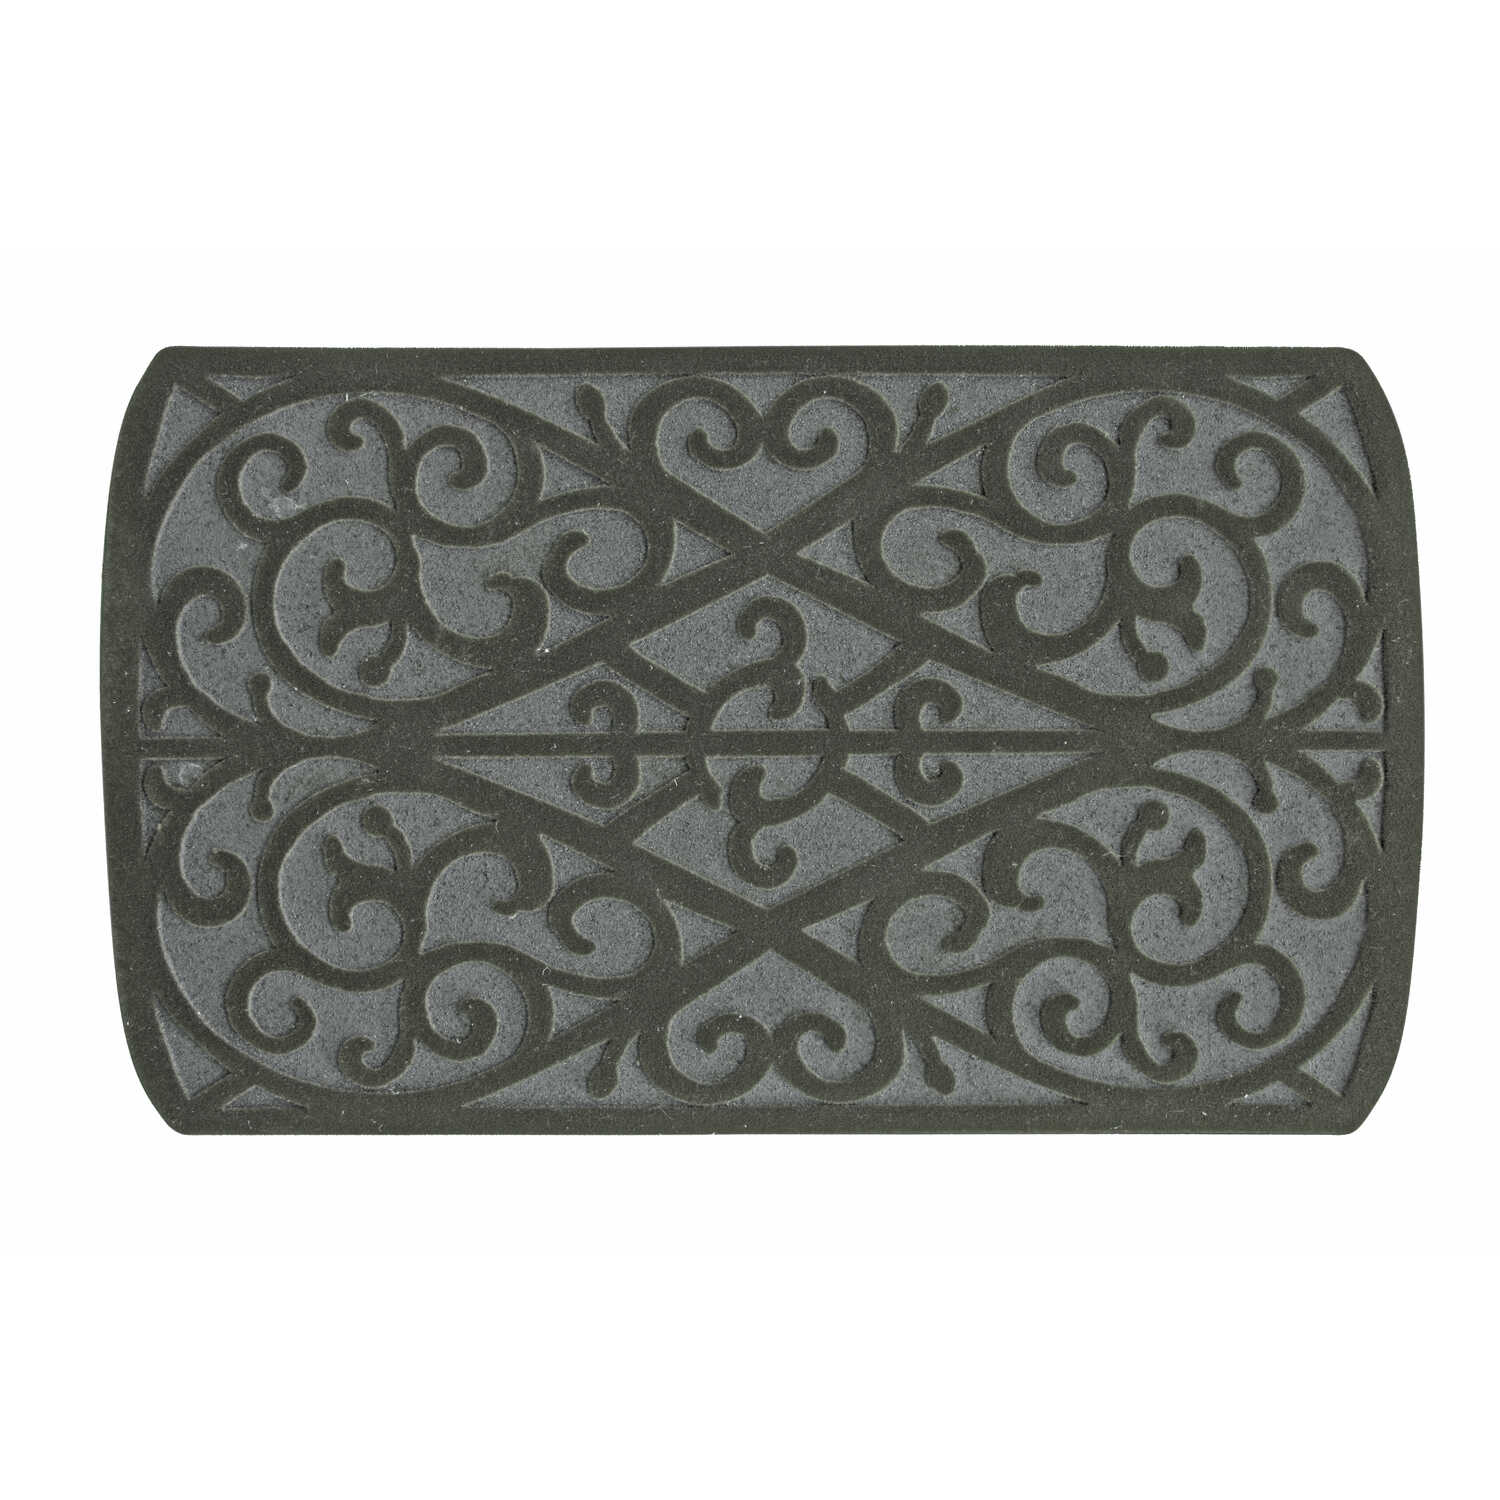 Bacova Guild  Gray  Rubber  Nonslip Floor Mat  30 in. L x 18 in. W